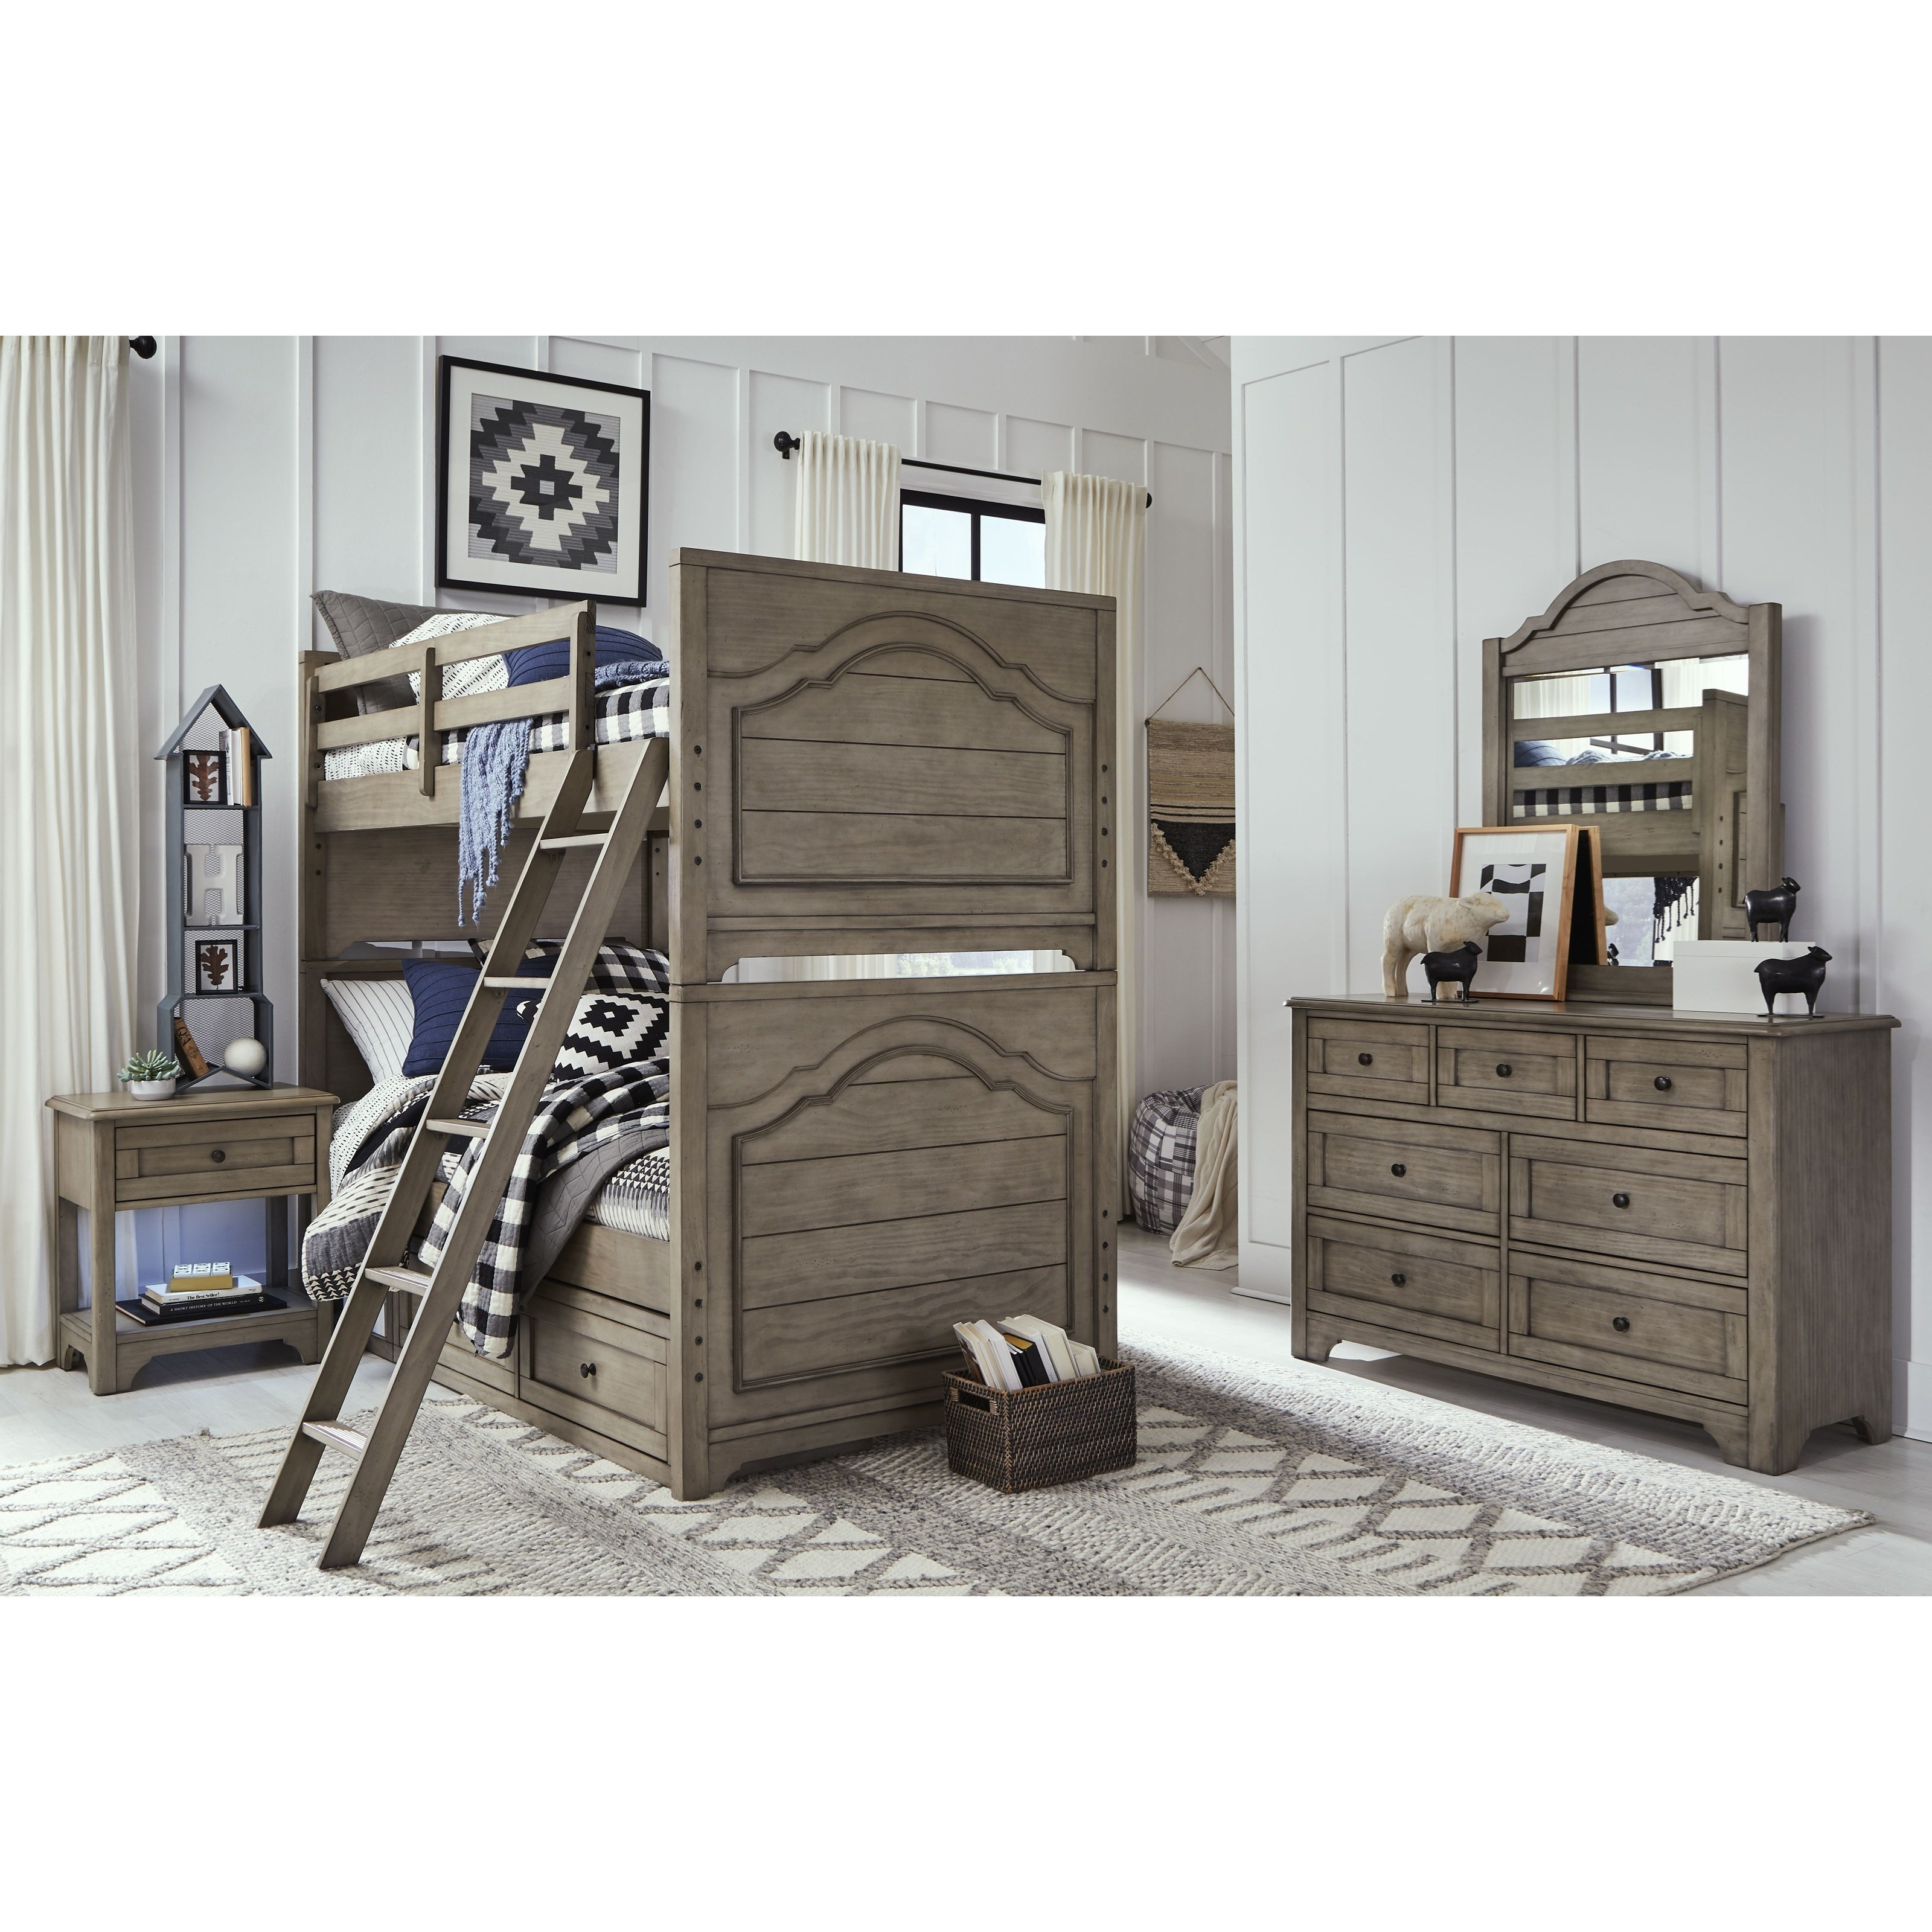 Farm House Twin over Twin Bunk Bedroom Group by Legacy Classic Kids at Mueller Furniture